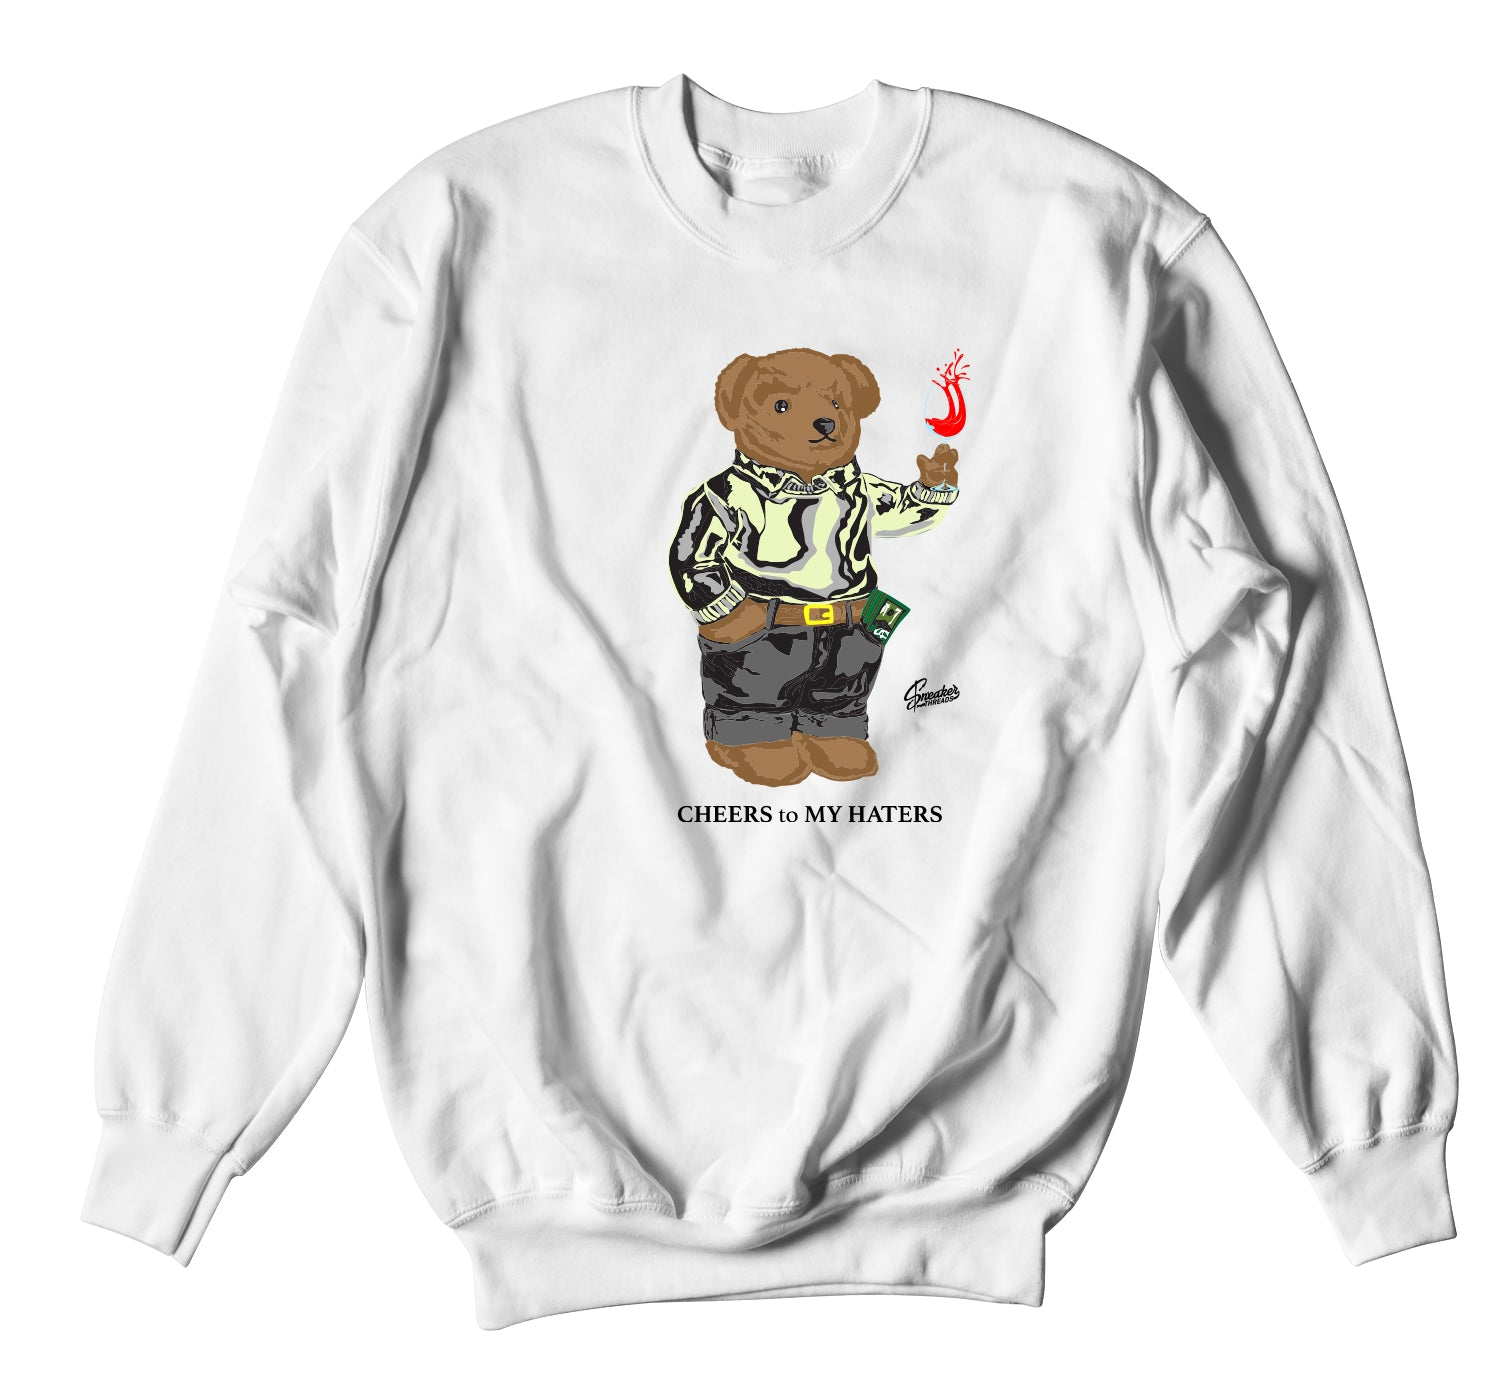 Yeezy Yeshaya Cheers Bear Sweater